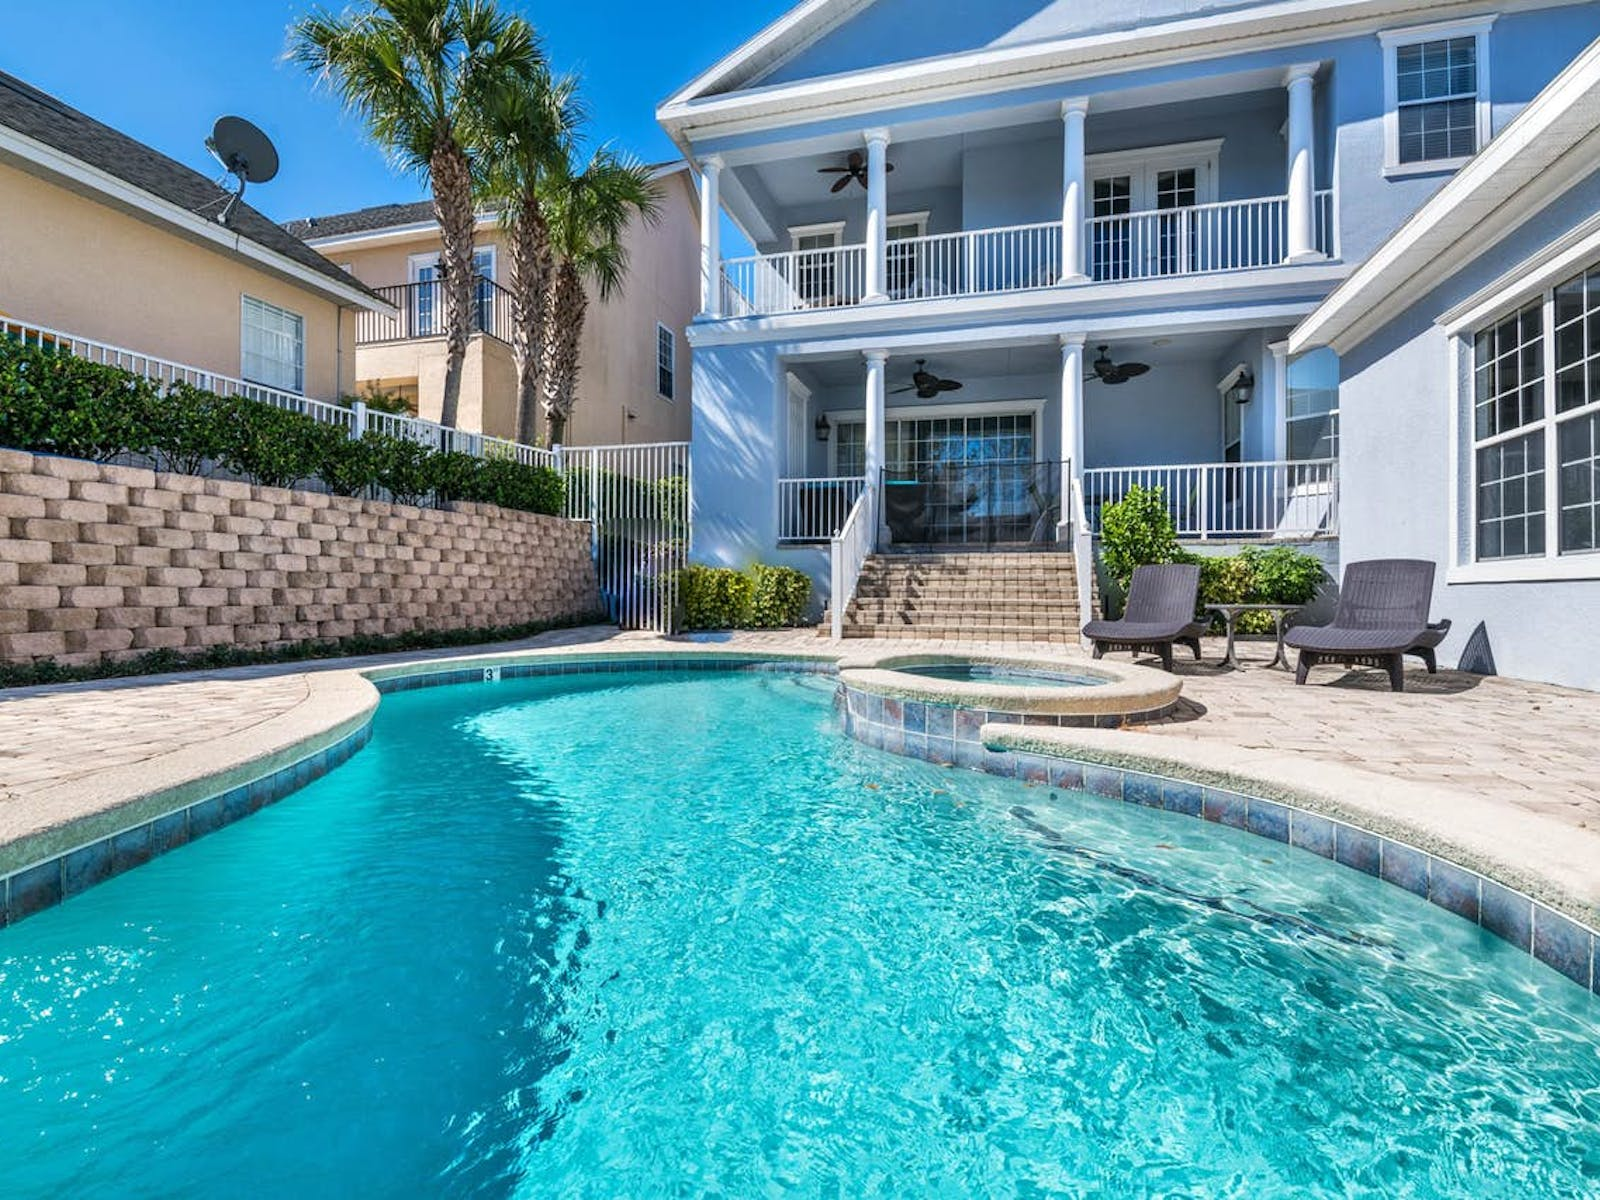 outdoor pool in Kissimmee, FL vacation rental home